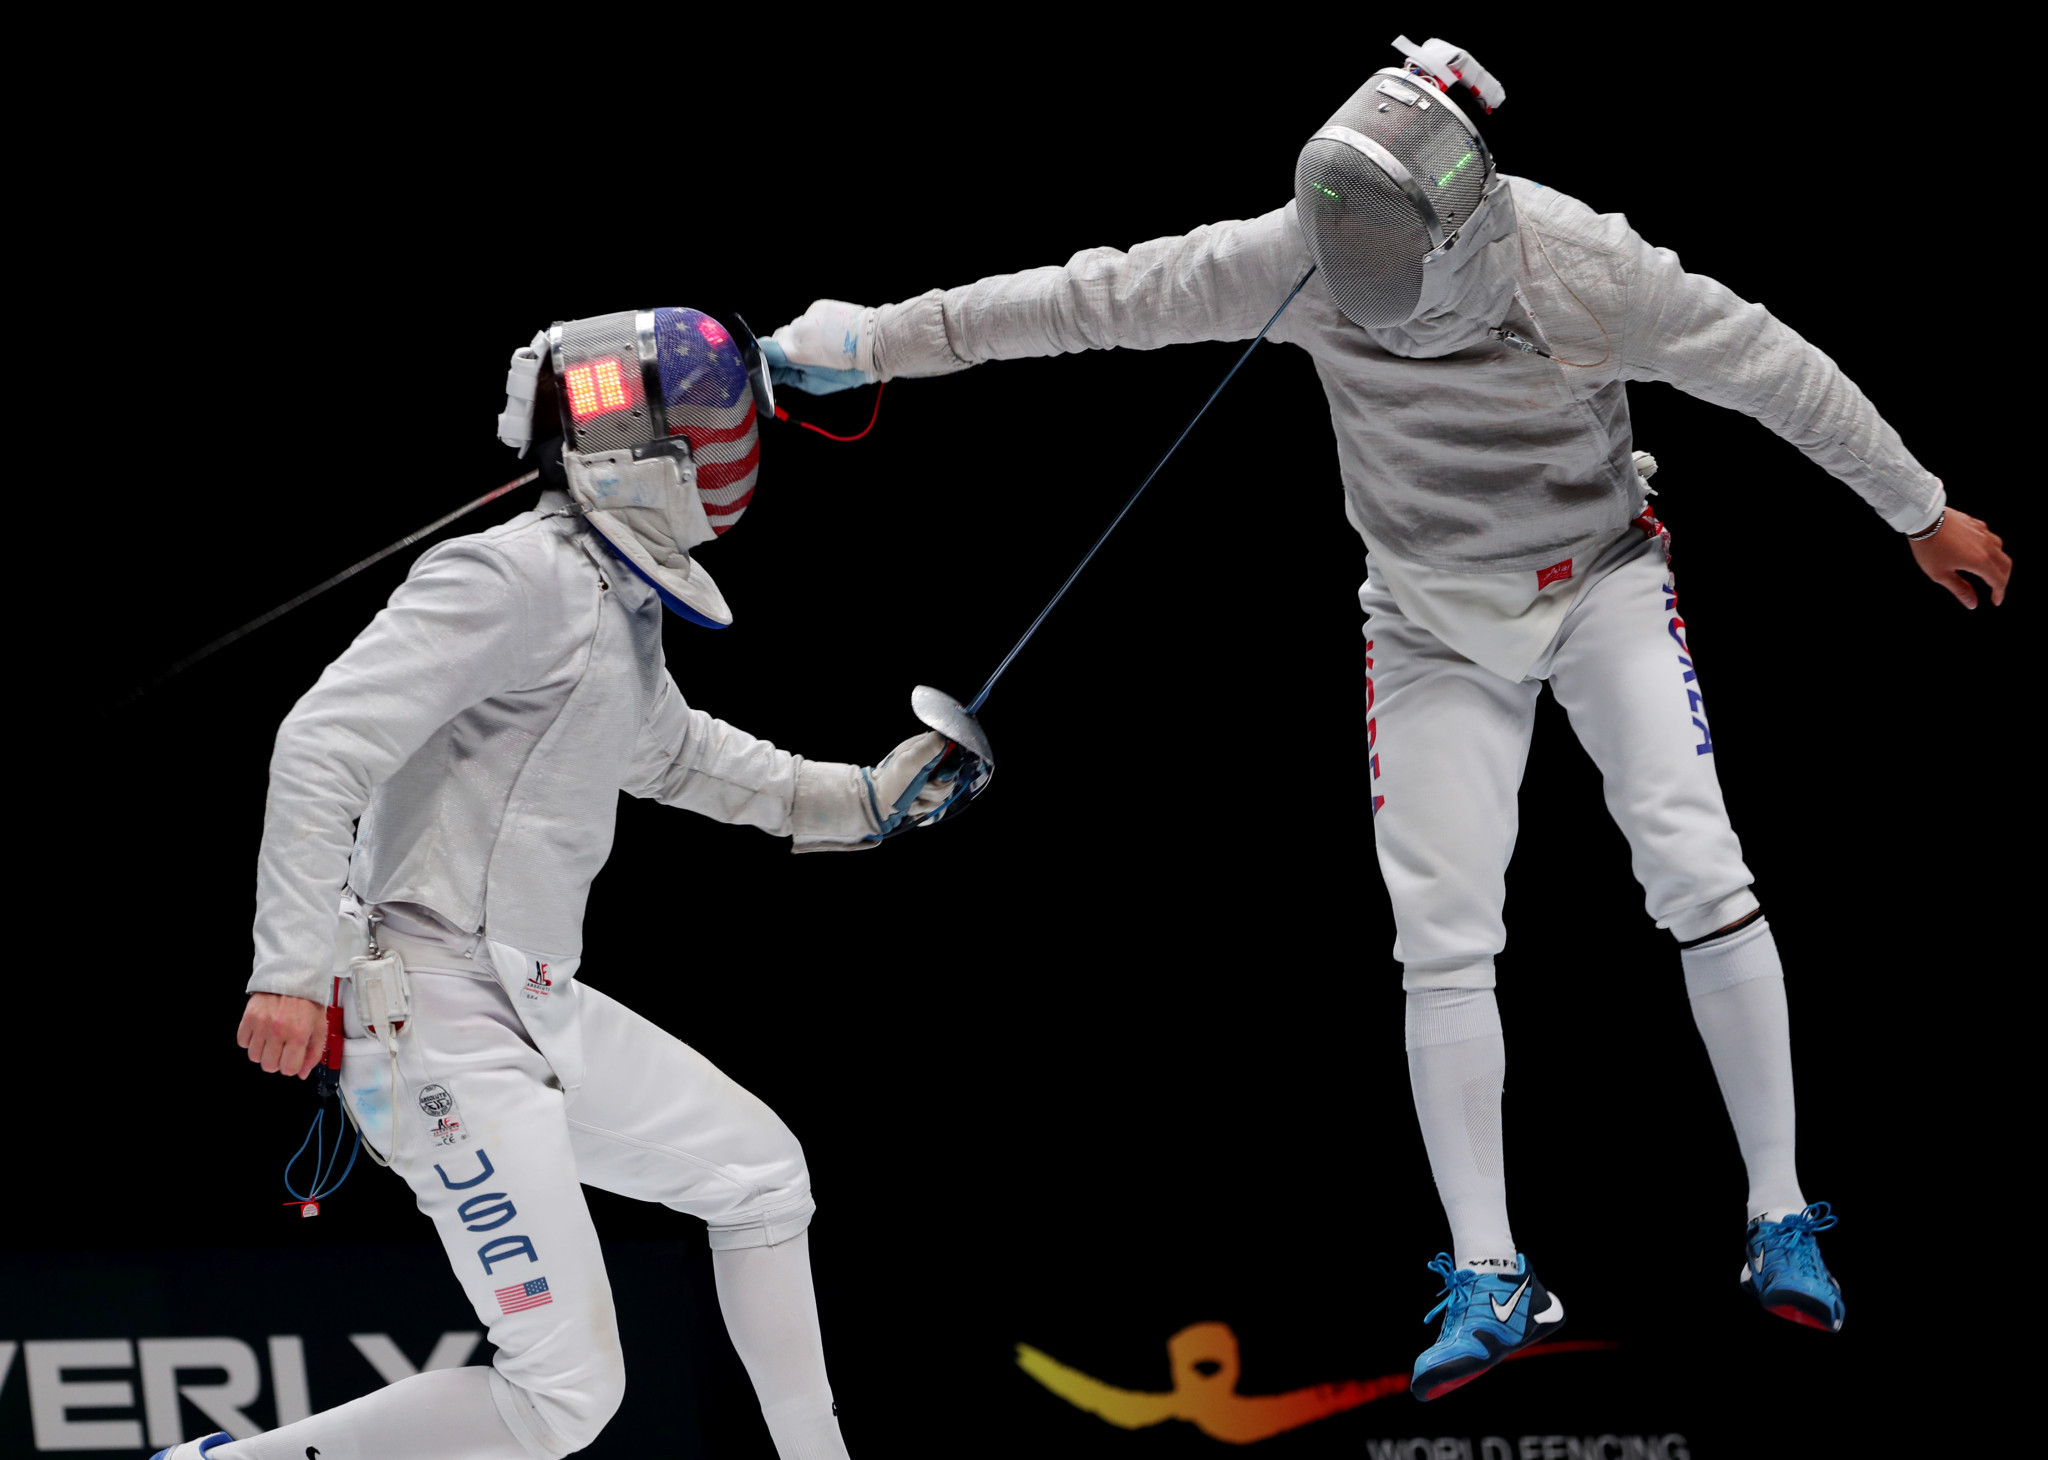 Top fencers head to Madrid and Tunis for latest FIE Sabre World Cups